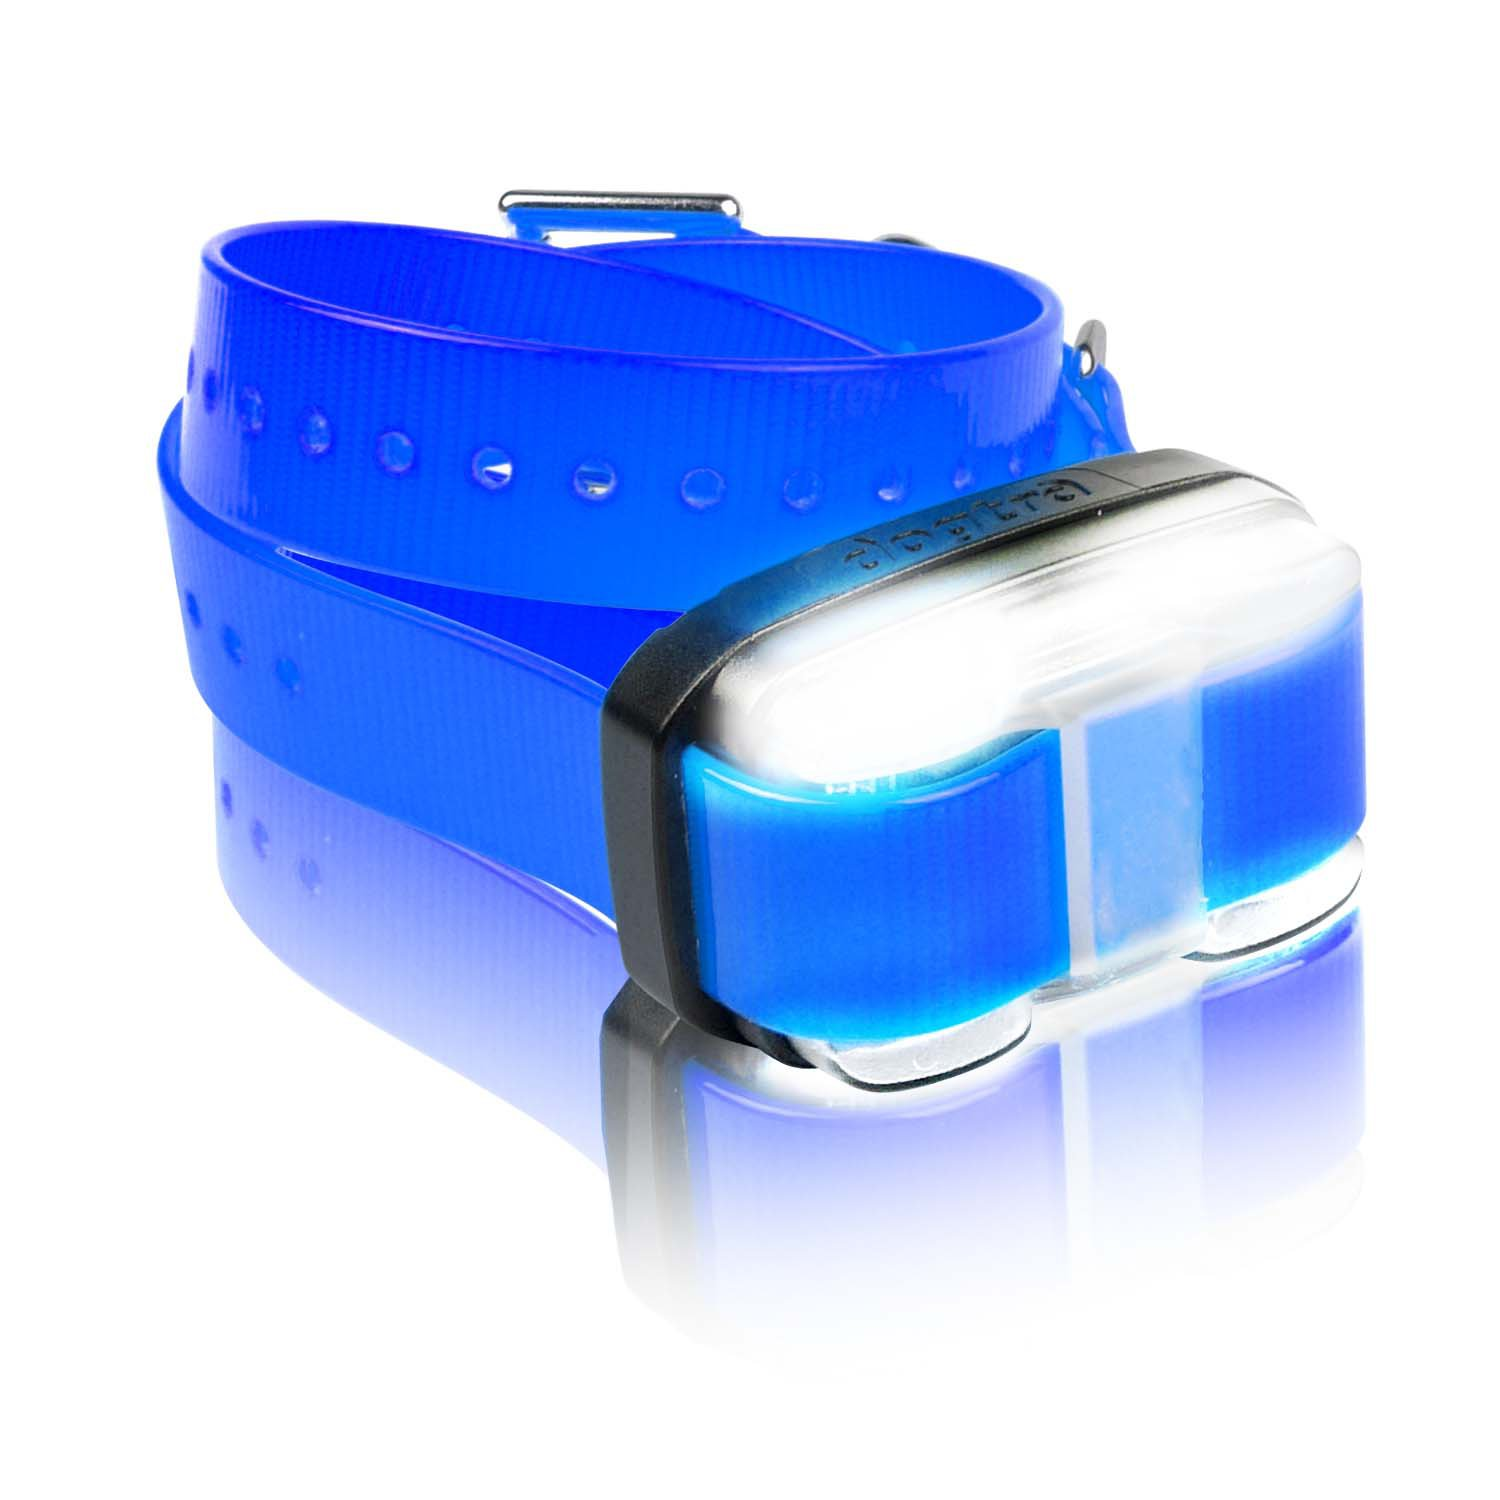 Dogtra Edge Add-On Receiver Dog Training Collar in Blue